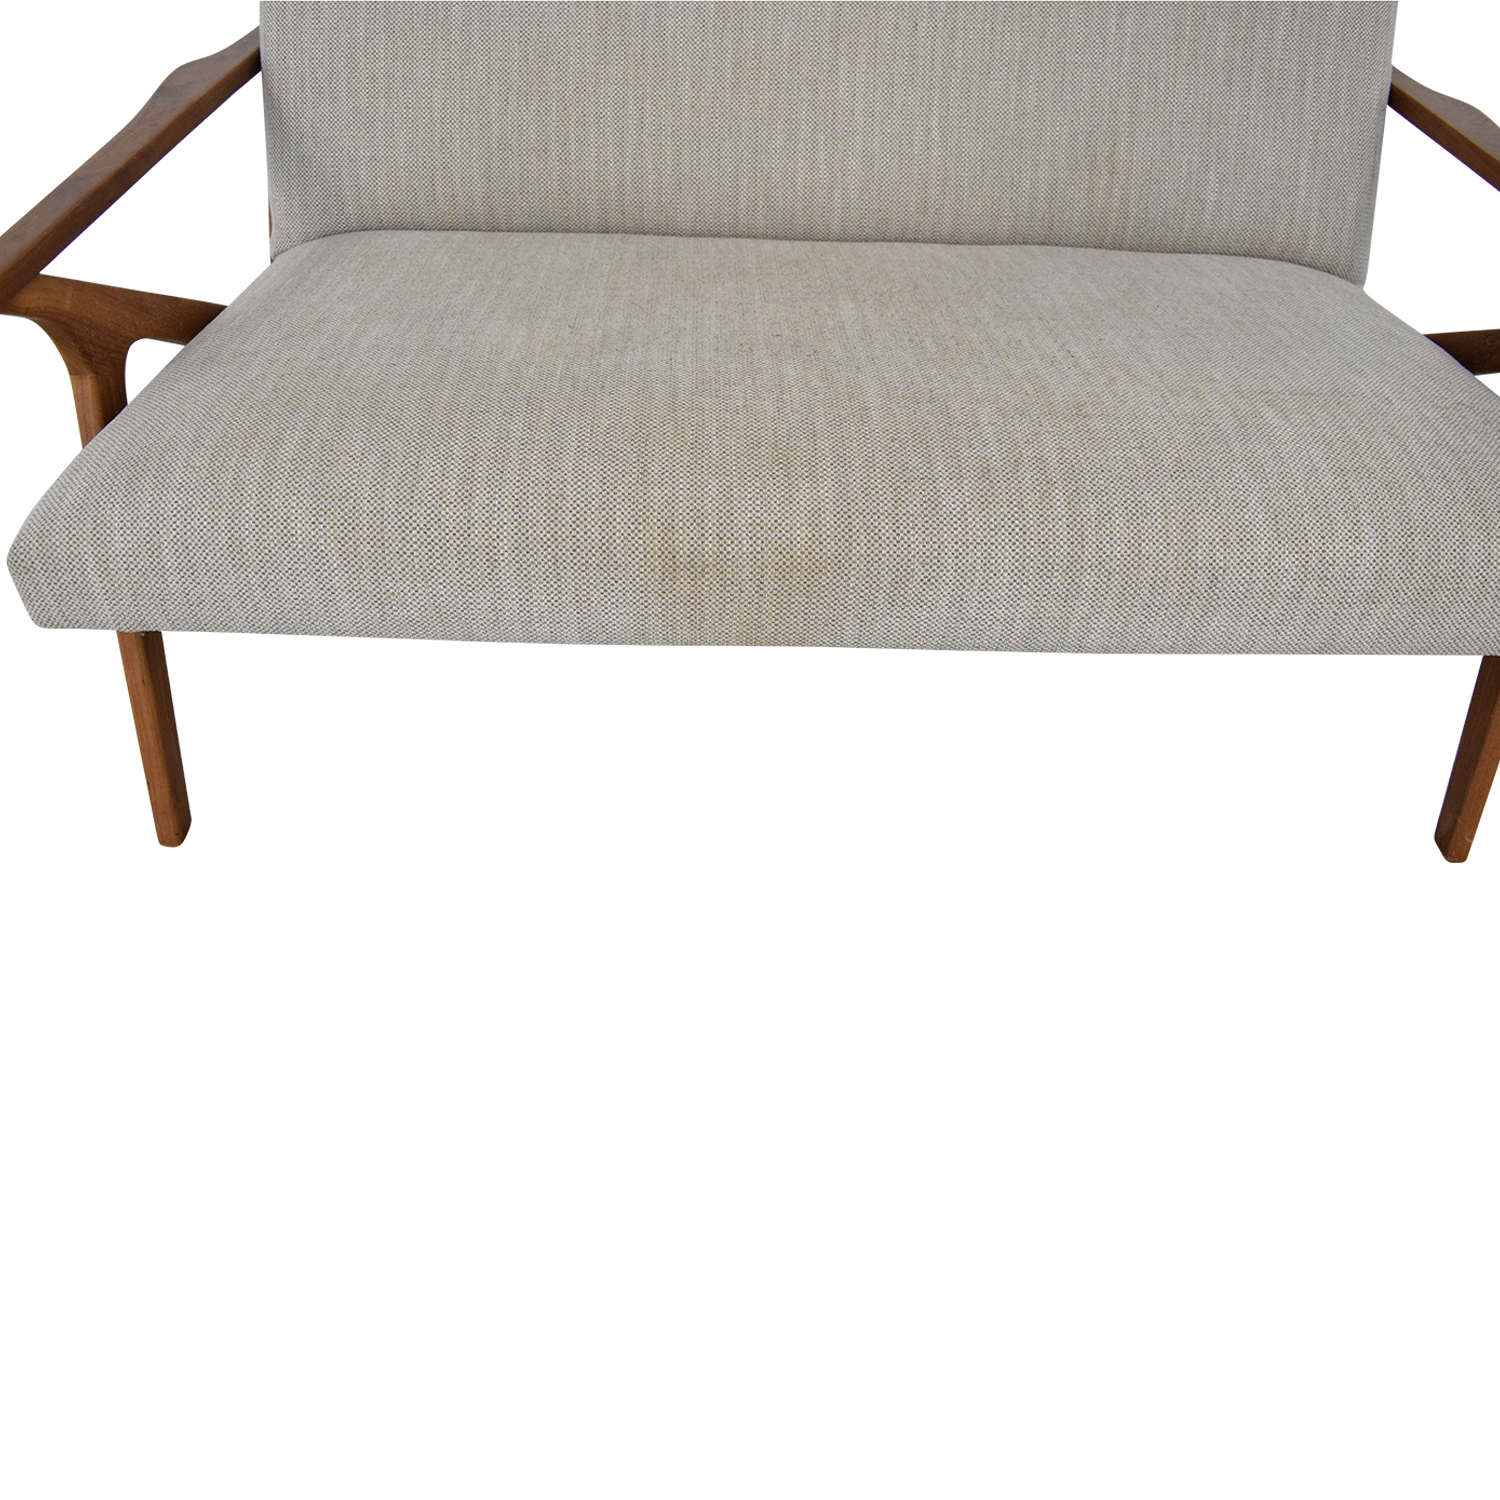 Crate & Barrel Crate & Barrel Cavett Frame Wood Love Seat Loveseats